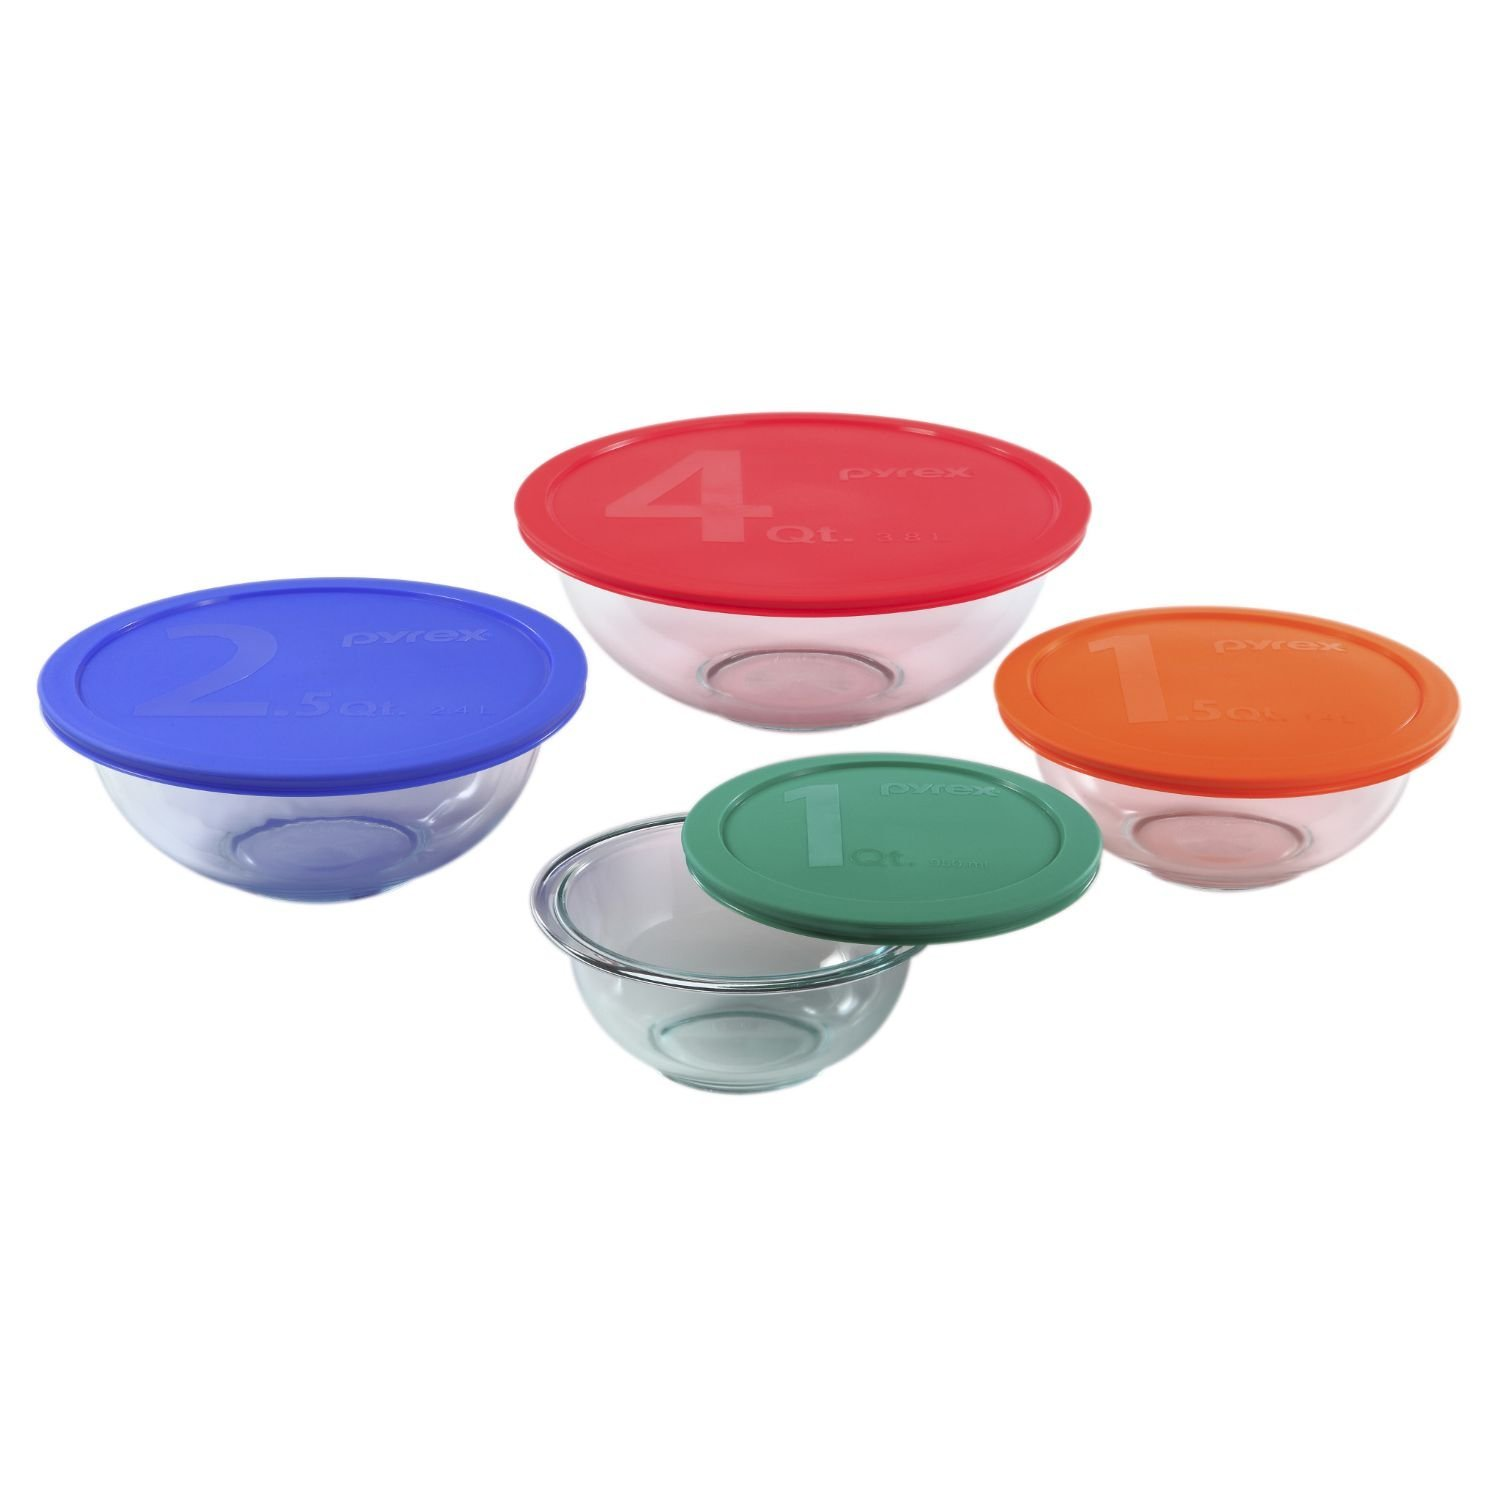 Our favorite glass mixing bowl set